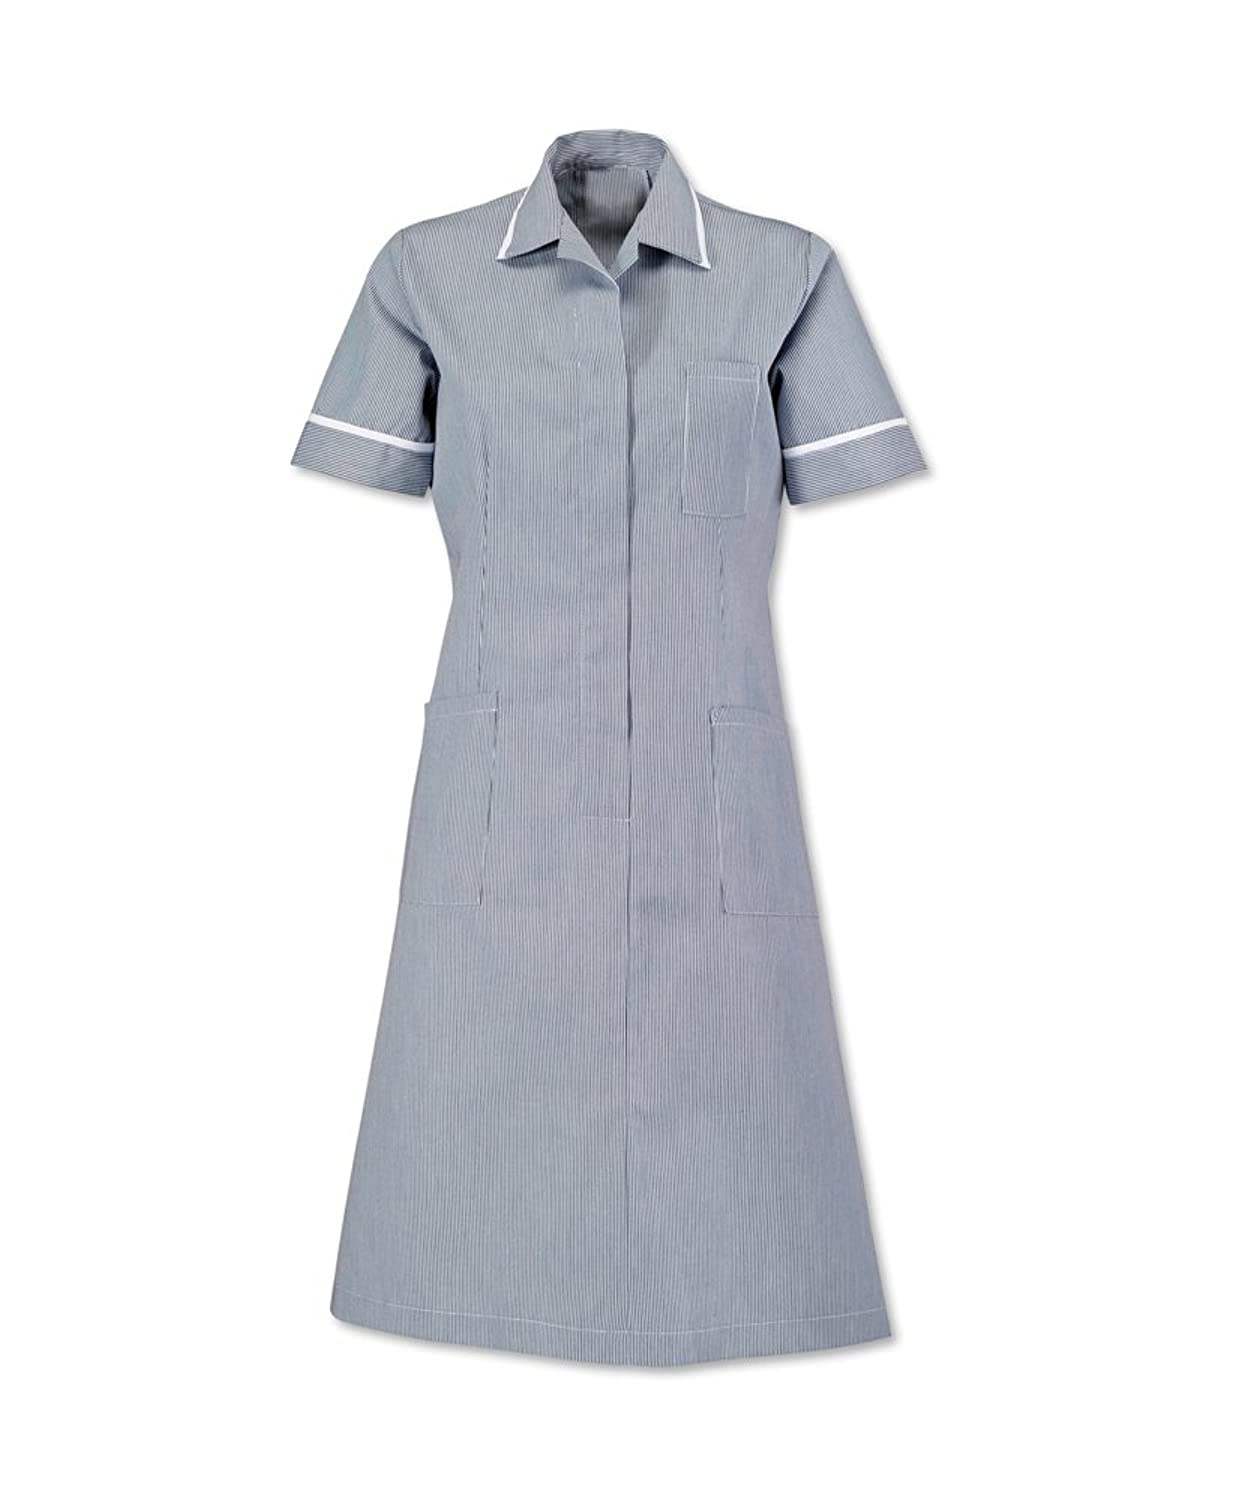 AX Short Sleeve Lightweight Striped Dress Colour Navy & White